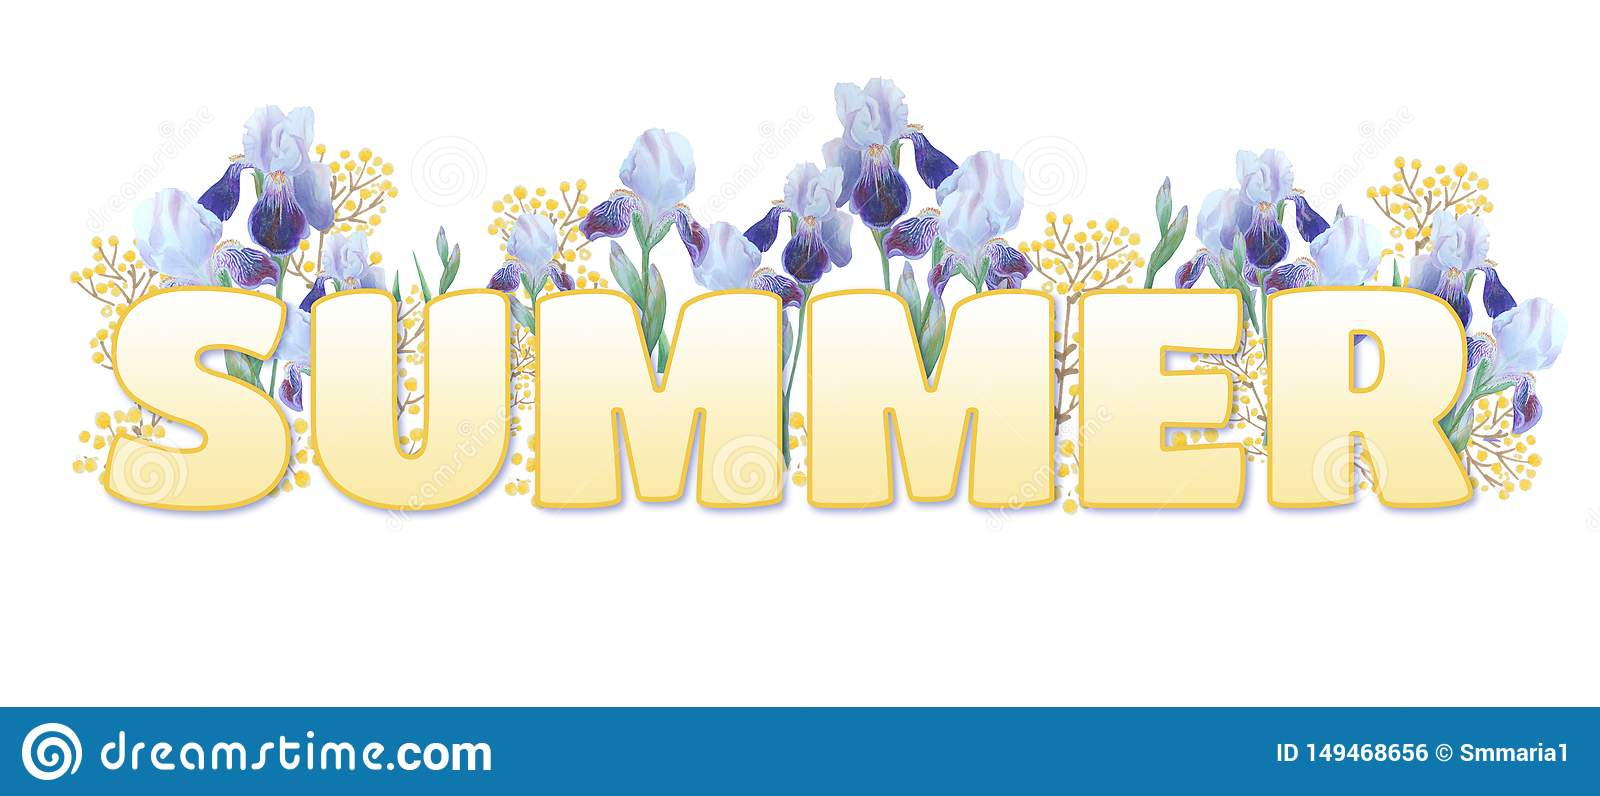 The word `Summer`. Yellow gradient inscription on white background. Bright irises and yellow sprigs